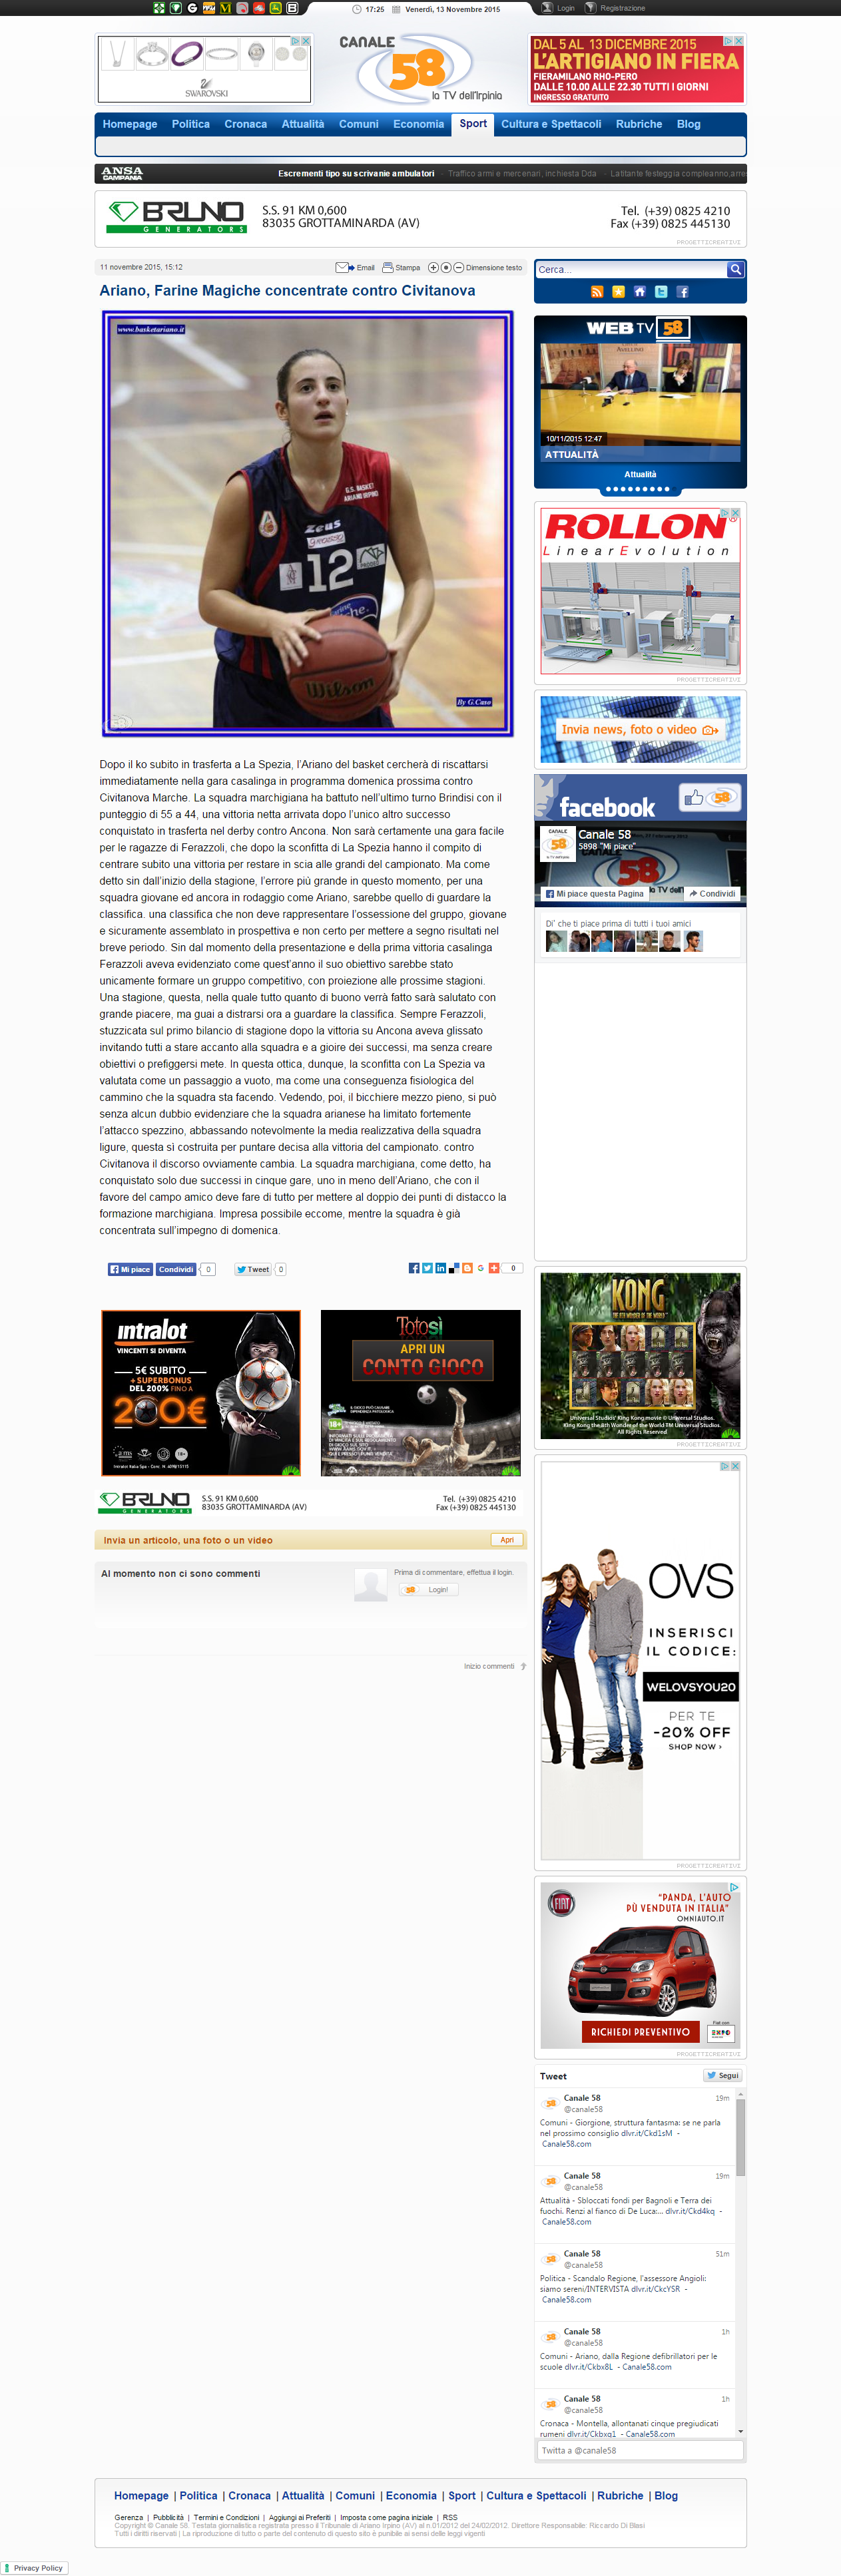 11.11.2015_canale58.com